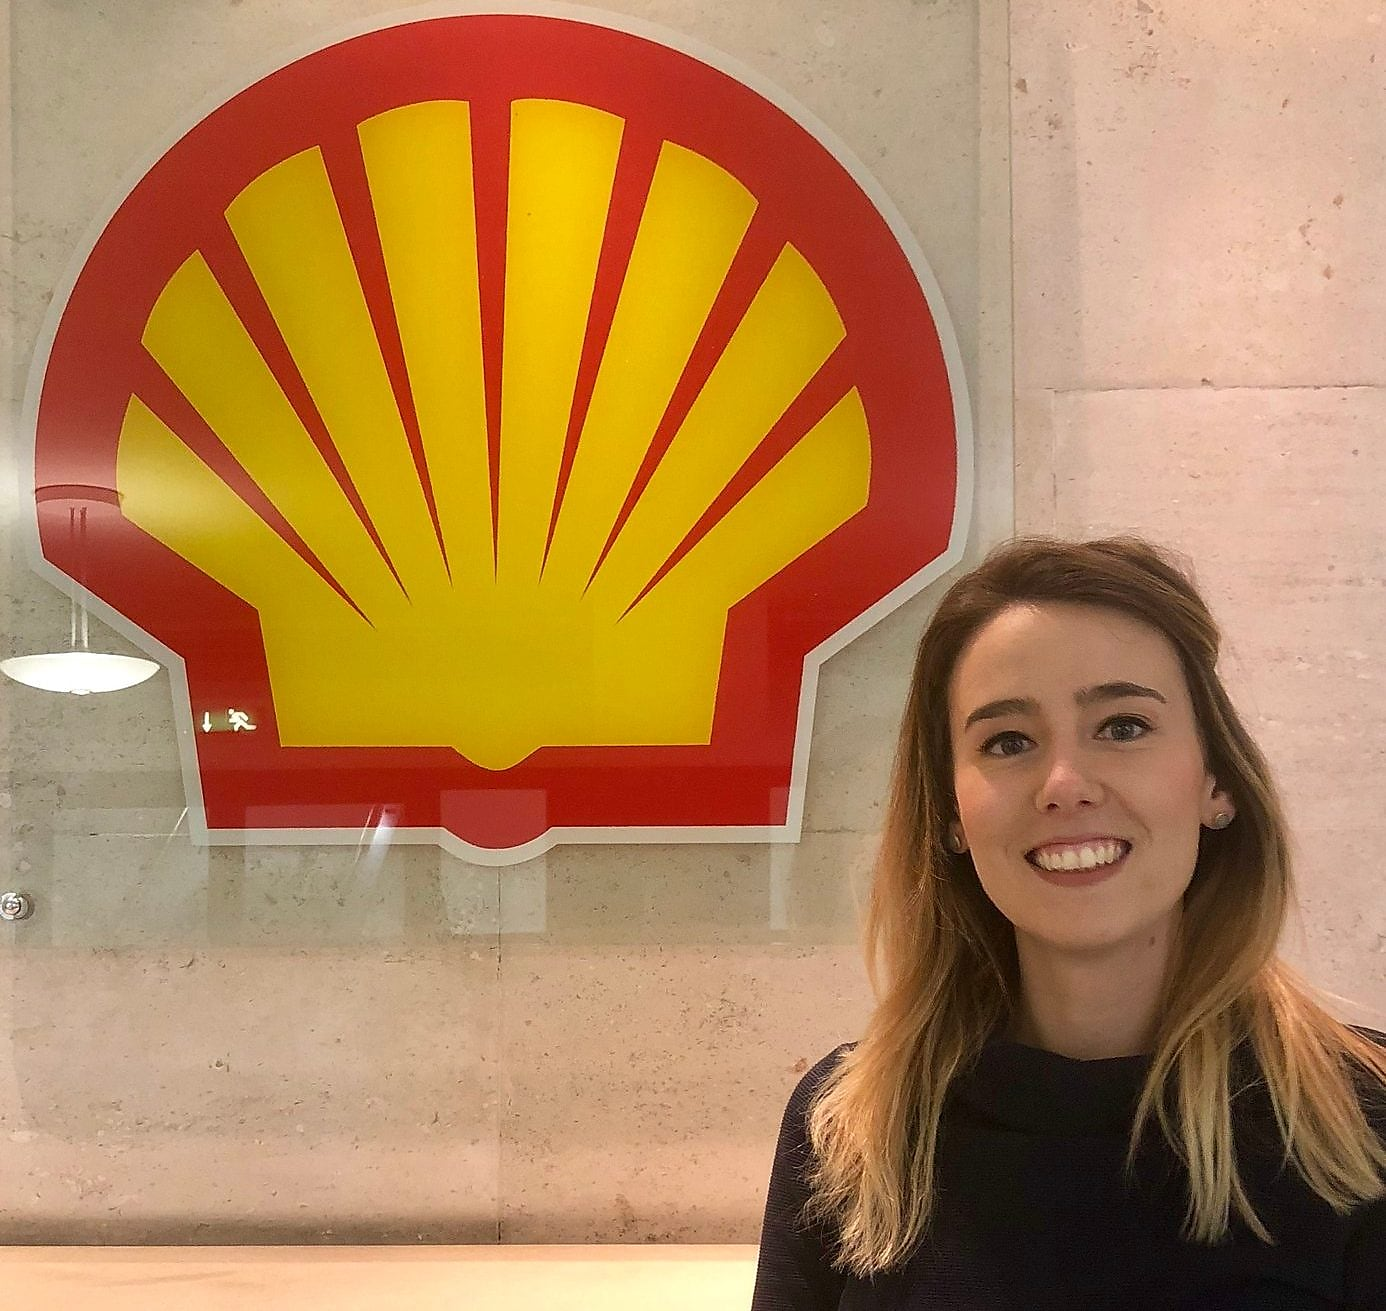 Emma is standing near The Shell Logo